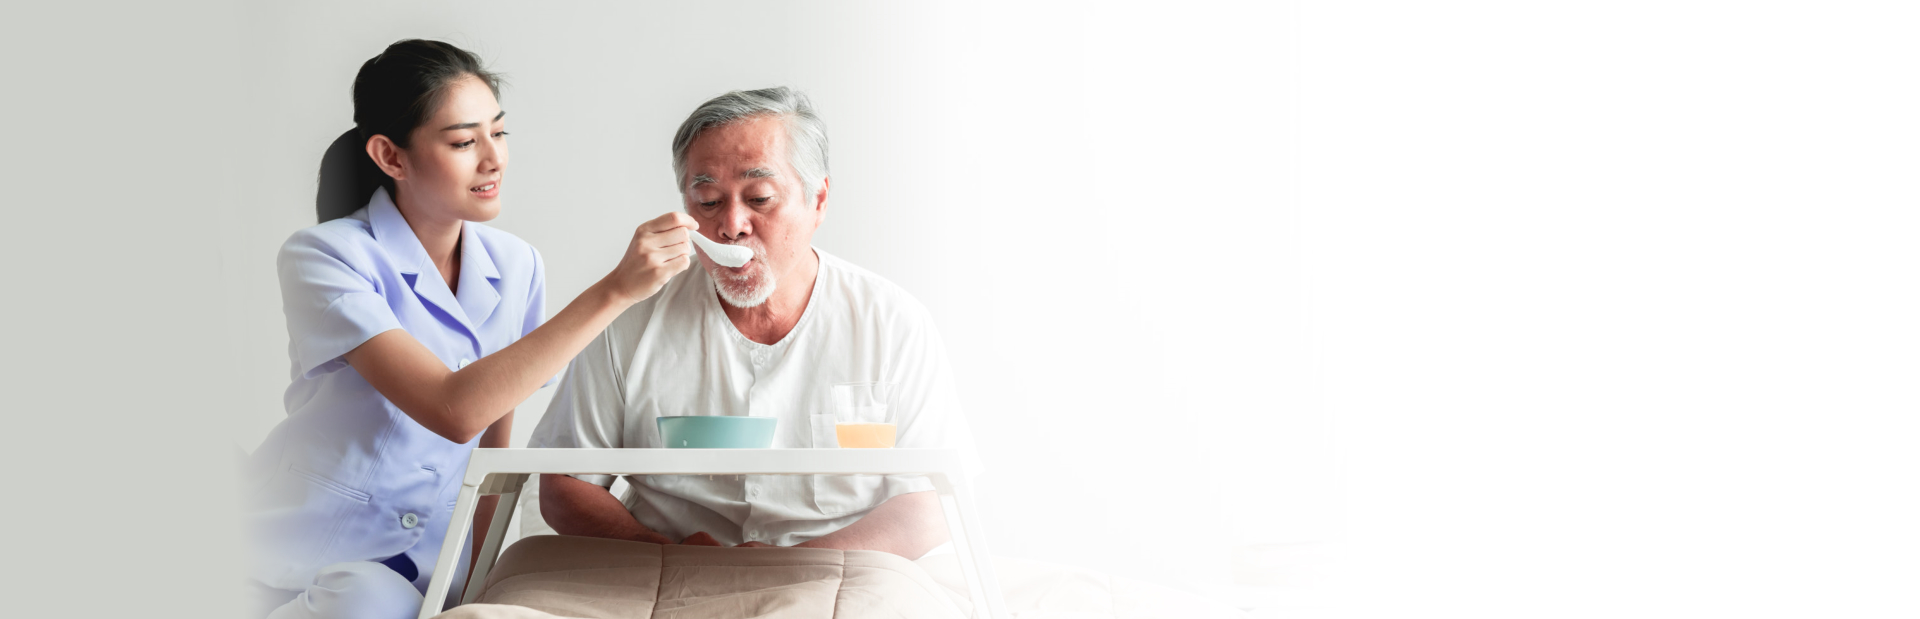 caregiver assisting senior man in eating